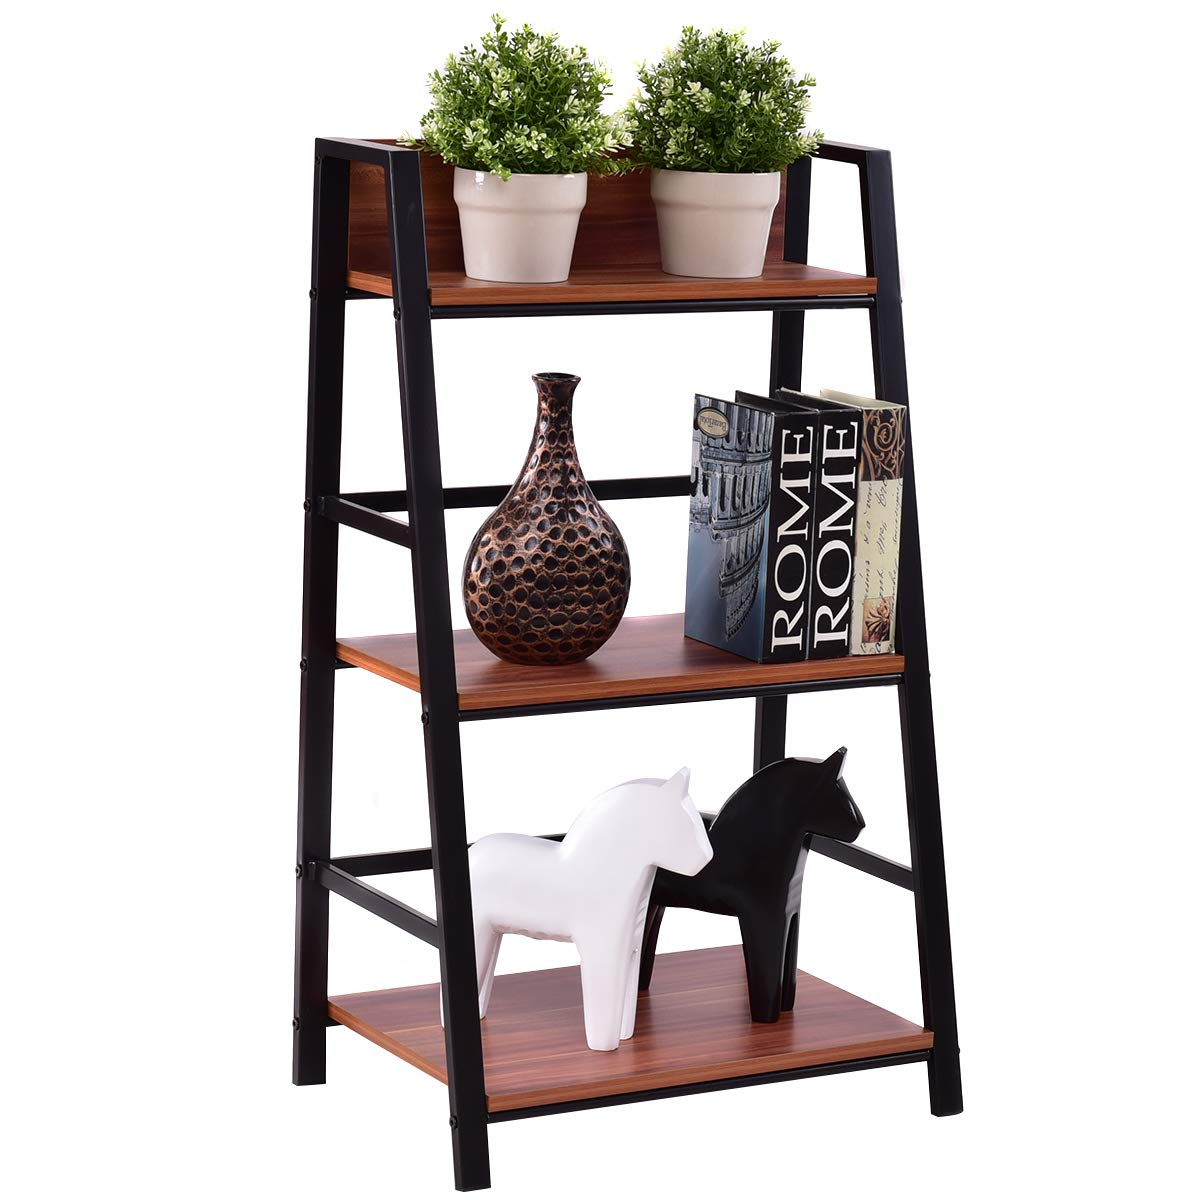 Tangkula 3-Tier Ladder Shelf Home Office Bookshelf Plant Display Stand Storage Shelves Multipurpose Corner Shelf Bookcase by Tangkula